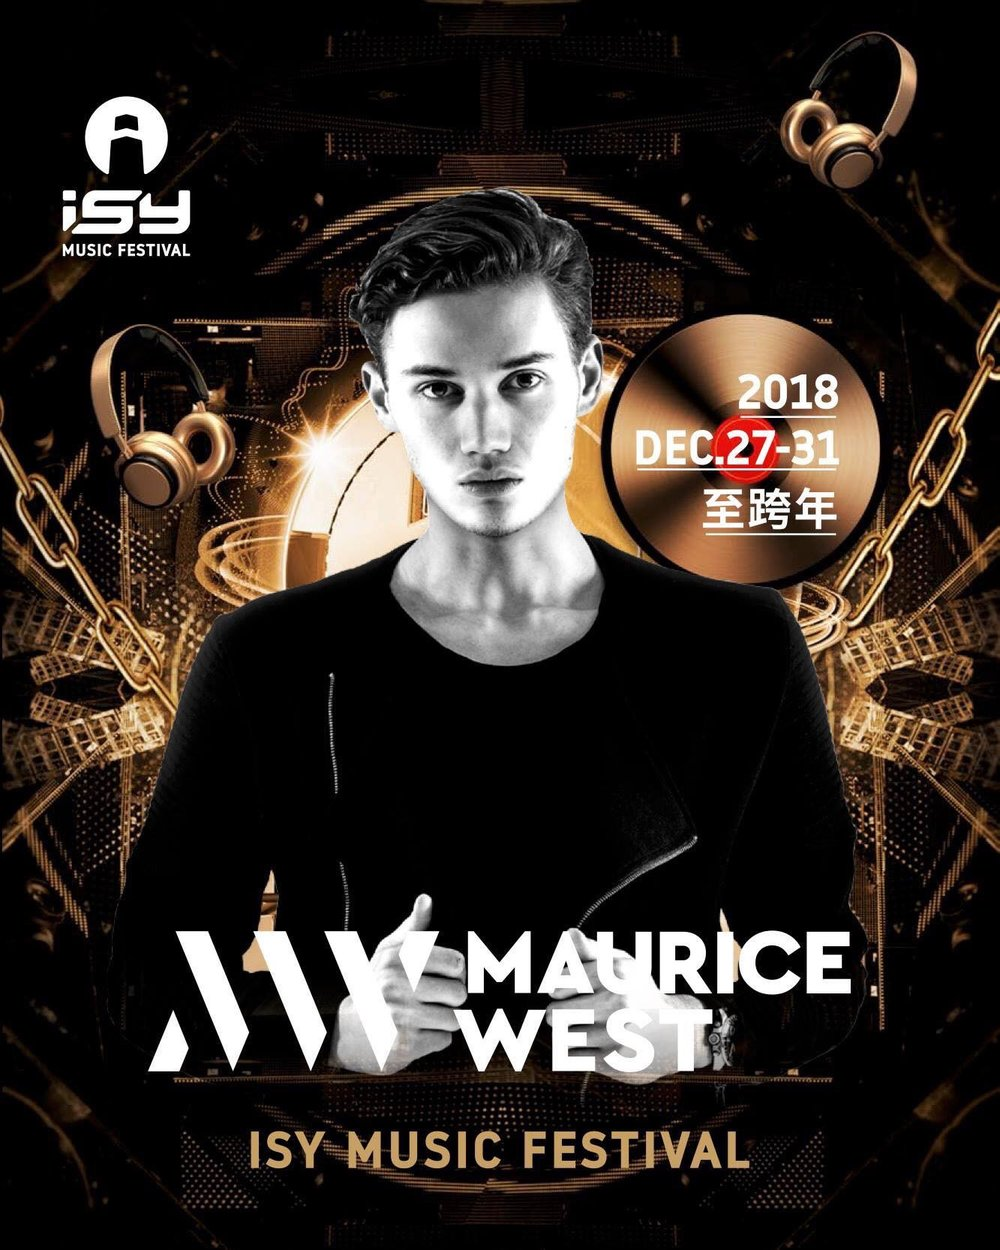 Maurice West - The 19-years-old Dutch DJ and producer Maurice West has, despite his young age, already made huge moves in the dance music community. He is the first artist to sign to W&W's imprint Mainstage Music.